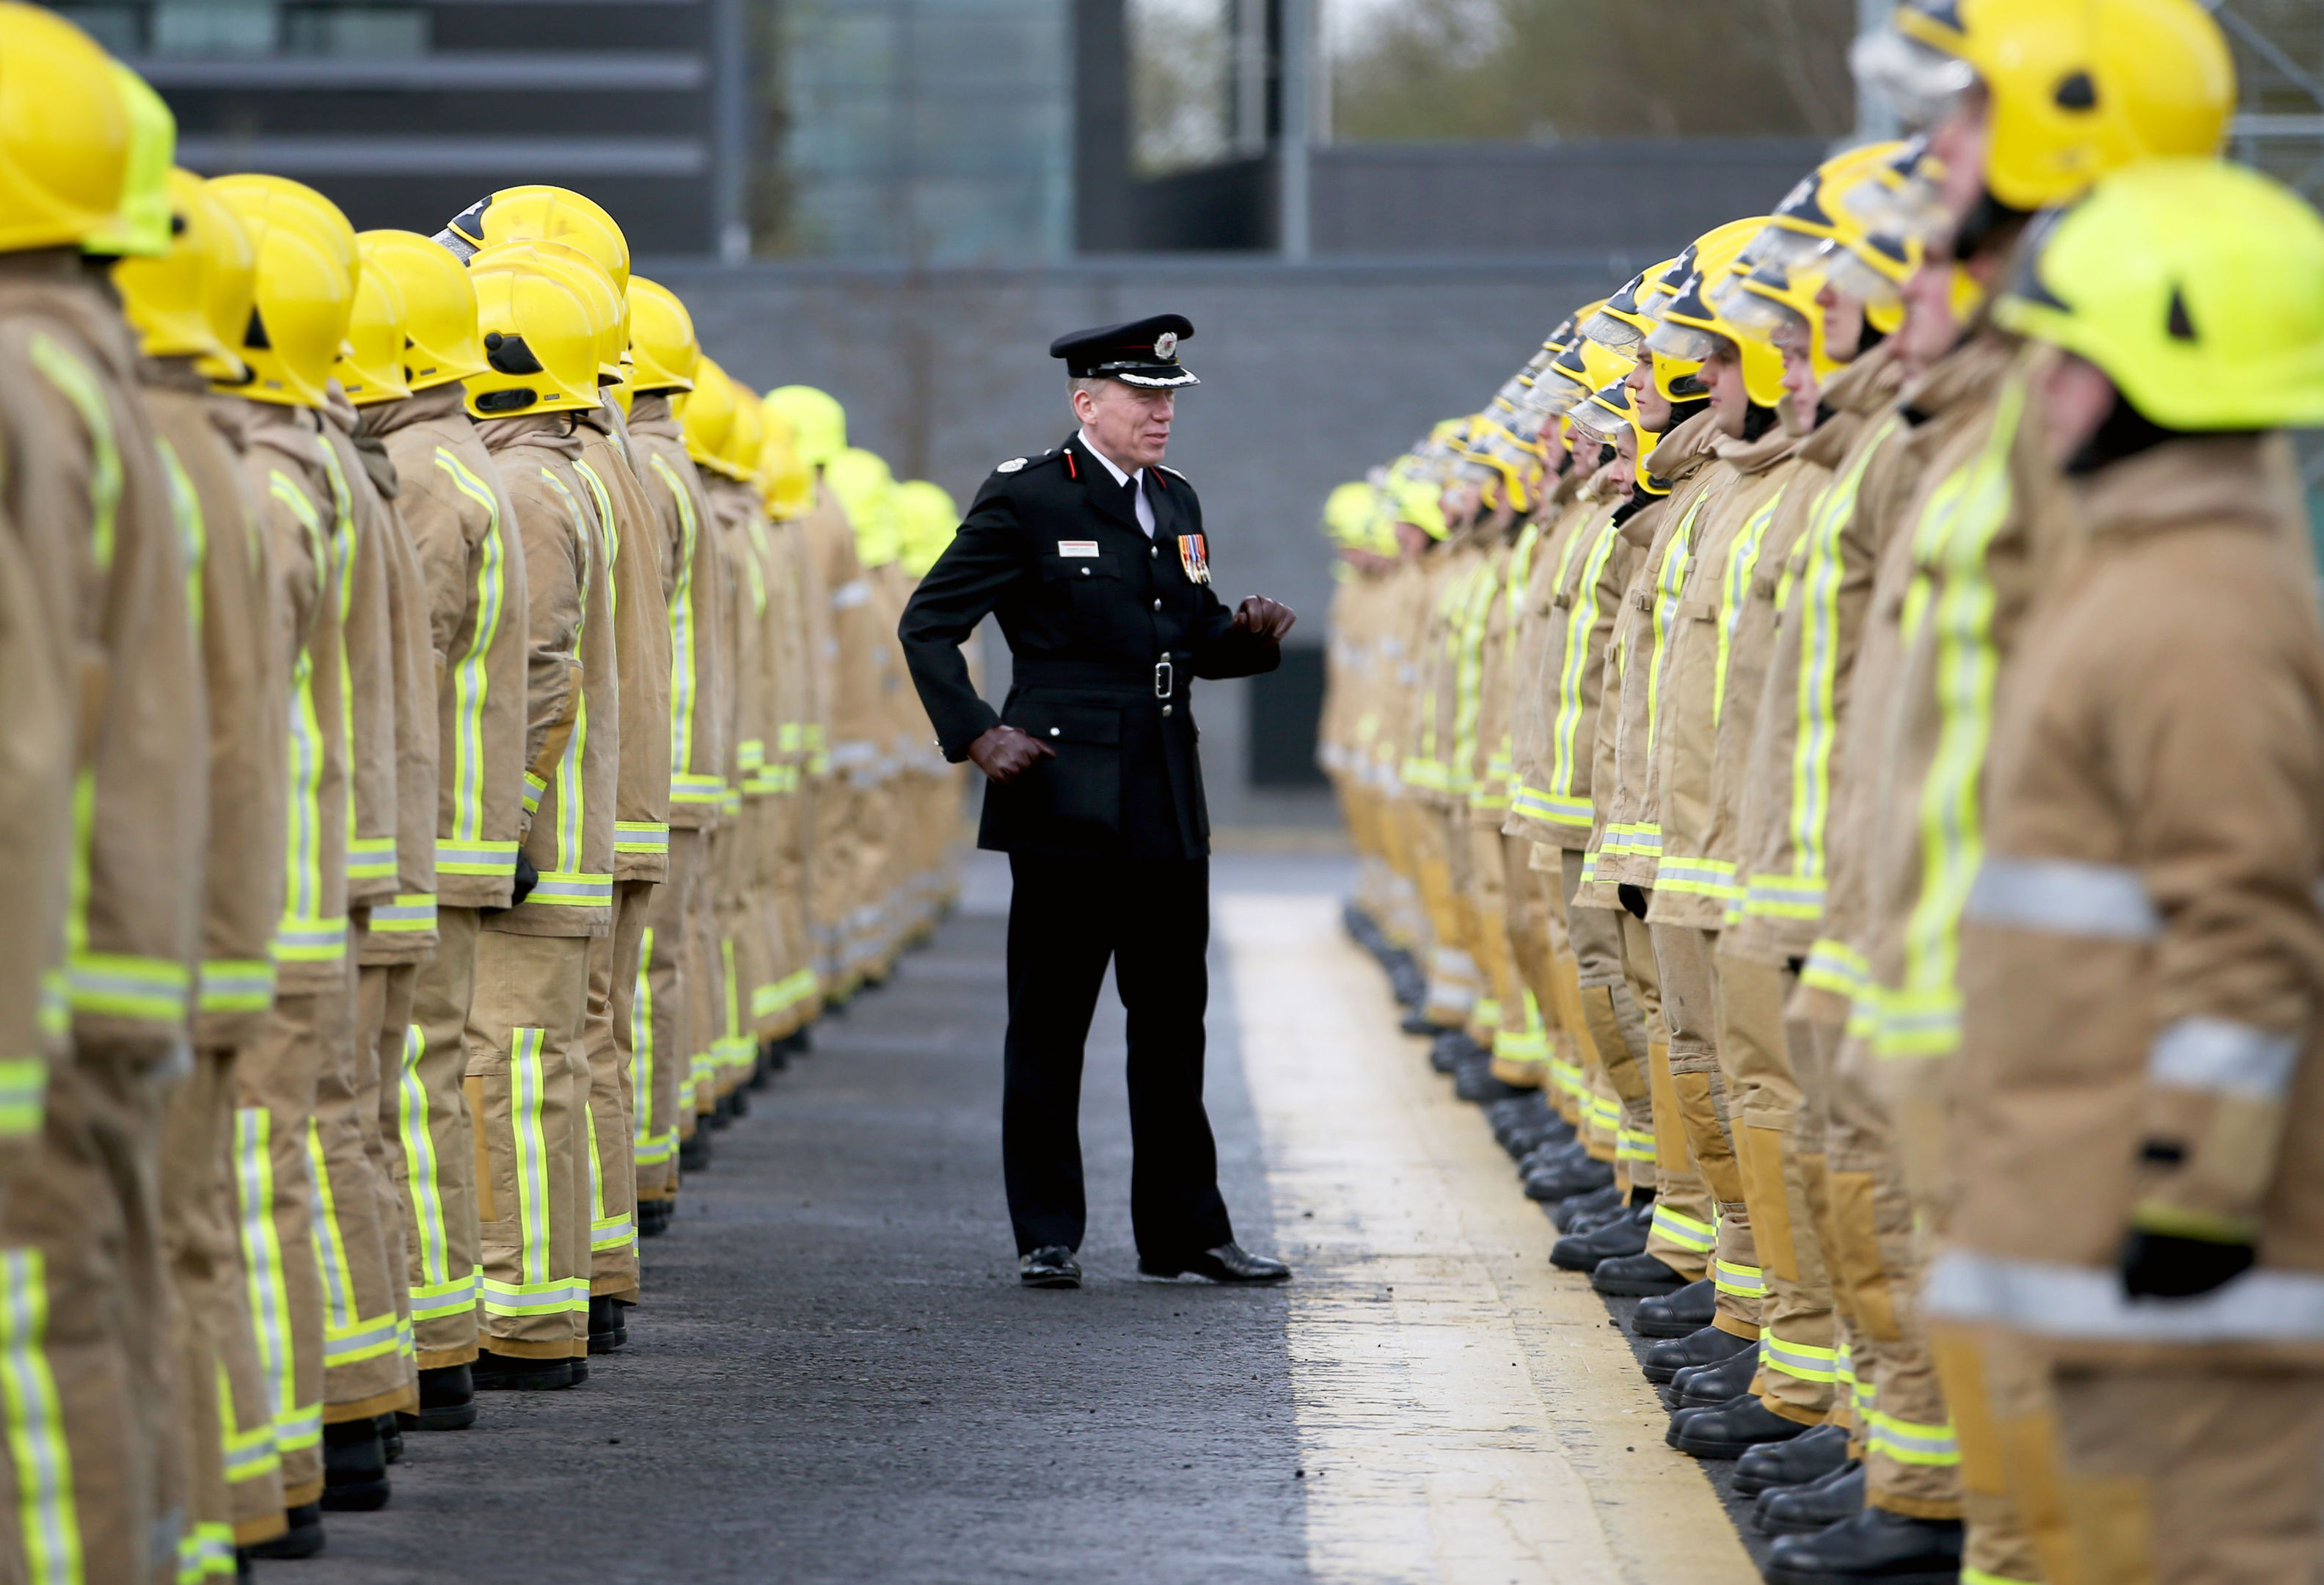 Assistant Chief Officer Lewis Ramsay inspects some of the 101 new full-time firefighters who have graduated in a special ceremony at the Scottish Fire and Rescue Service National Training Centre in Cambuslang, Glasgow. (Jane Barlow/PA Wire)